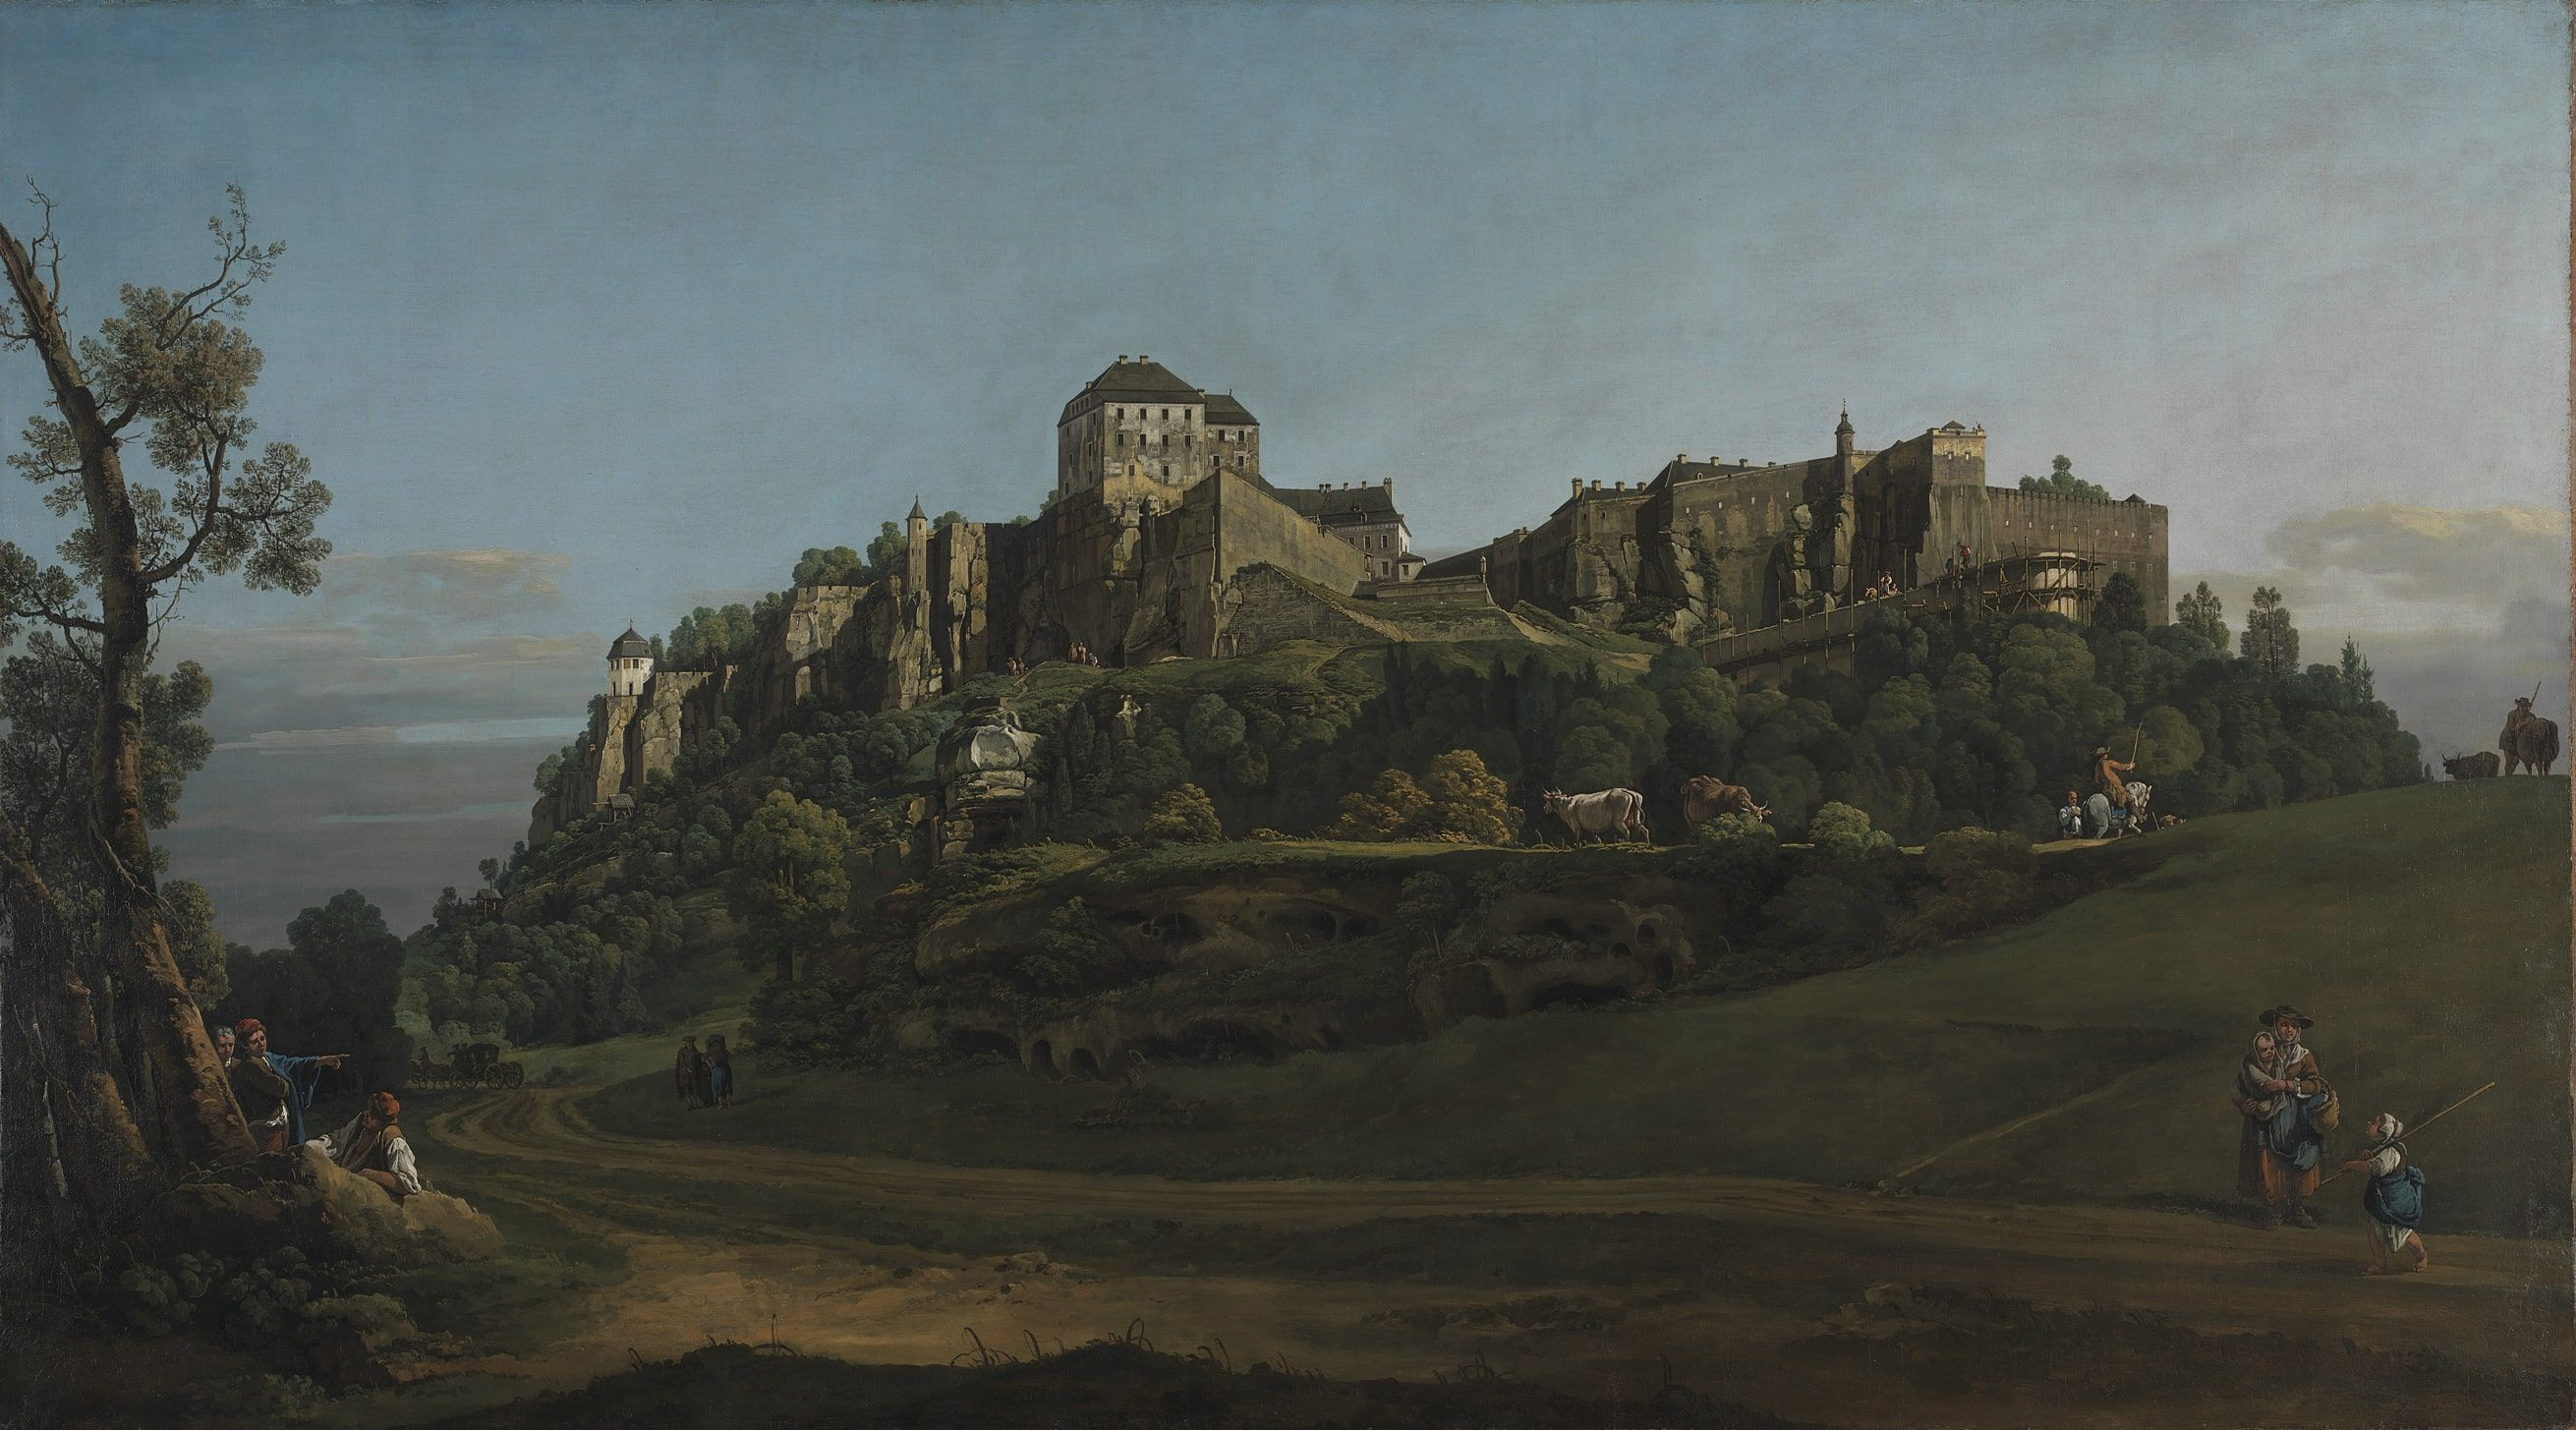 Bernardo Bellotto, Festung Königstein vom Norden, 1756-1758, Öl/Lw, 132.1 × 236.2 cm (© The National Gallery, London, Bought with the support of the American Friends of the National Gallery, The National Gallery Trust, the Estate of Mrs Madeline Swallow, Art Fund (with a contribution from The Wolfson Foundation), Howard and Roberta Ahmanson, The Deborah Loeb Brice Foundation, Mrs Mollie W. Vickers, The Manny and Brigitta Davidson Charitable Foundation, The Sackler Trust and through private appeal, 2017)